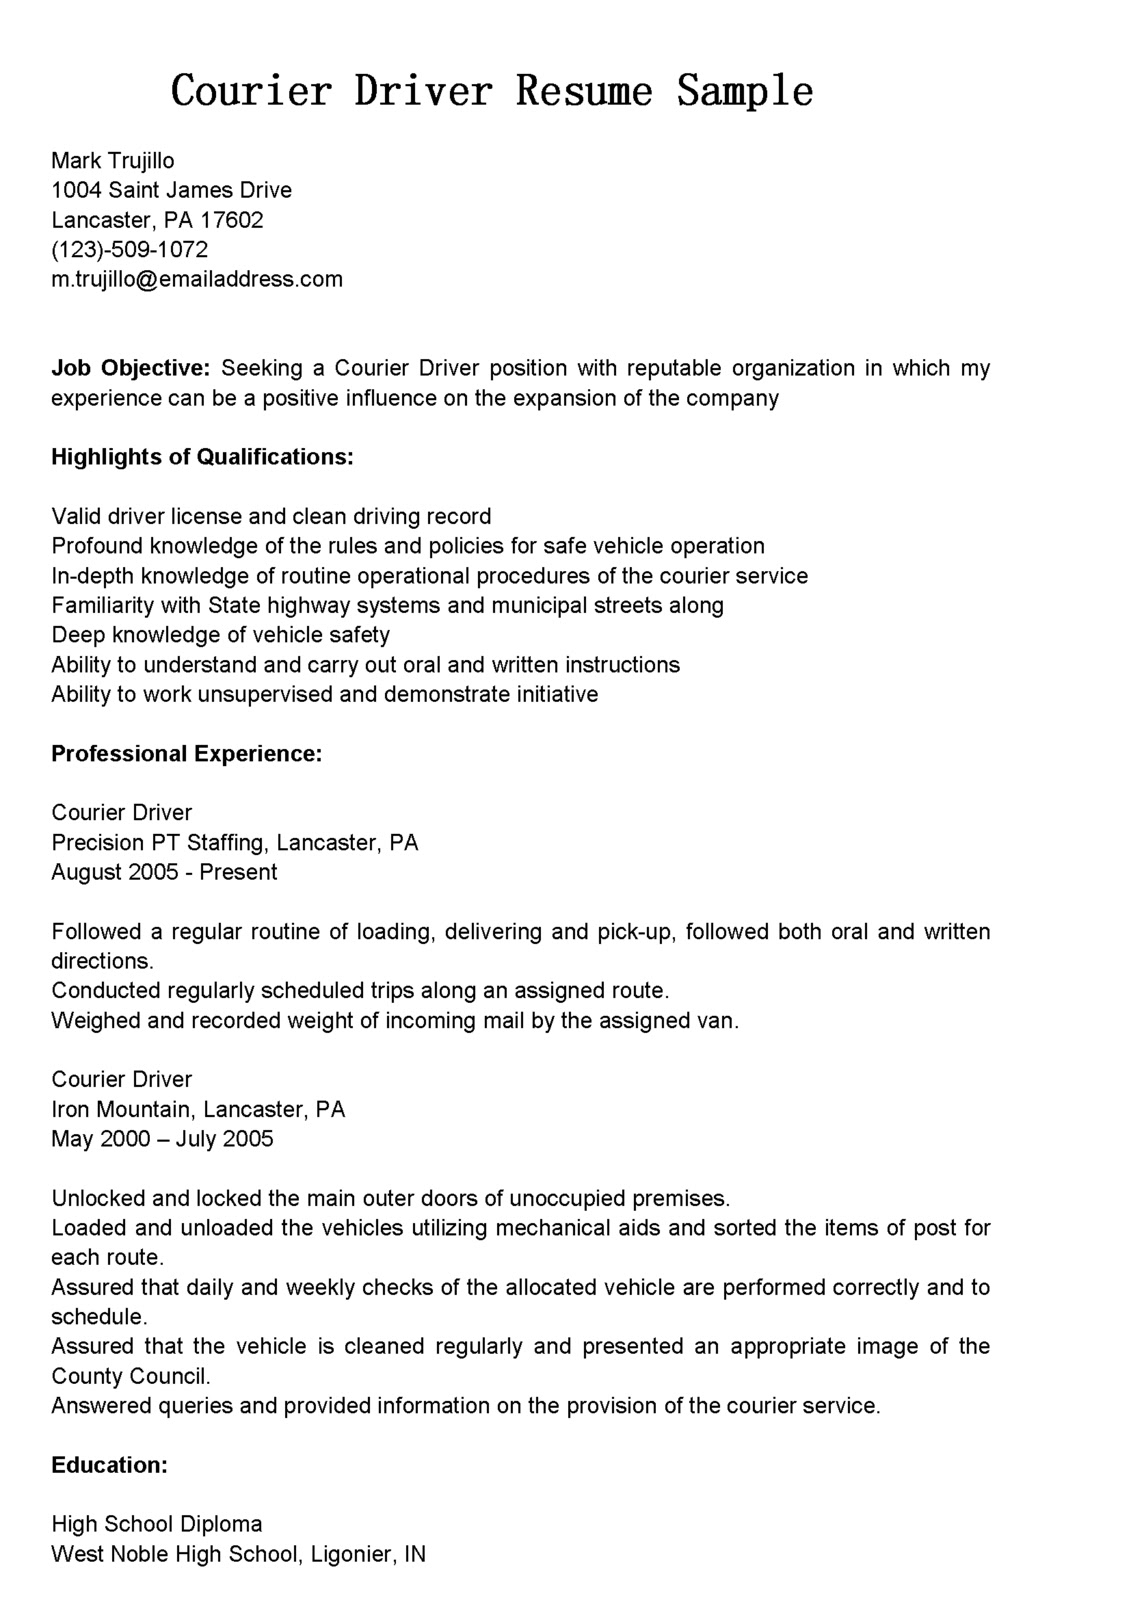 driver resumes  courier driver resume sample